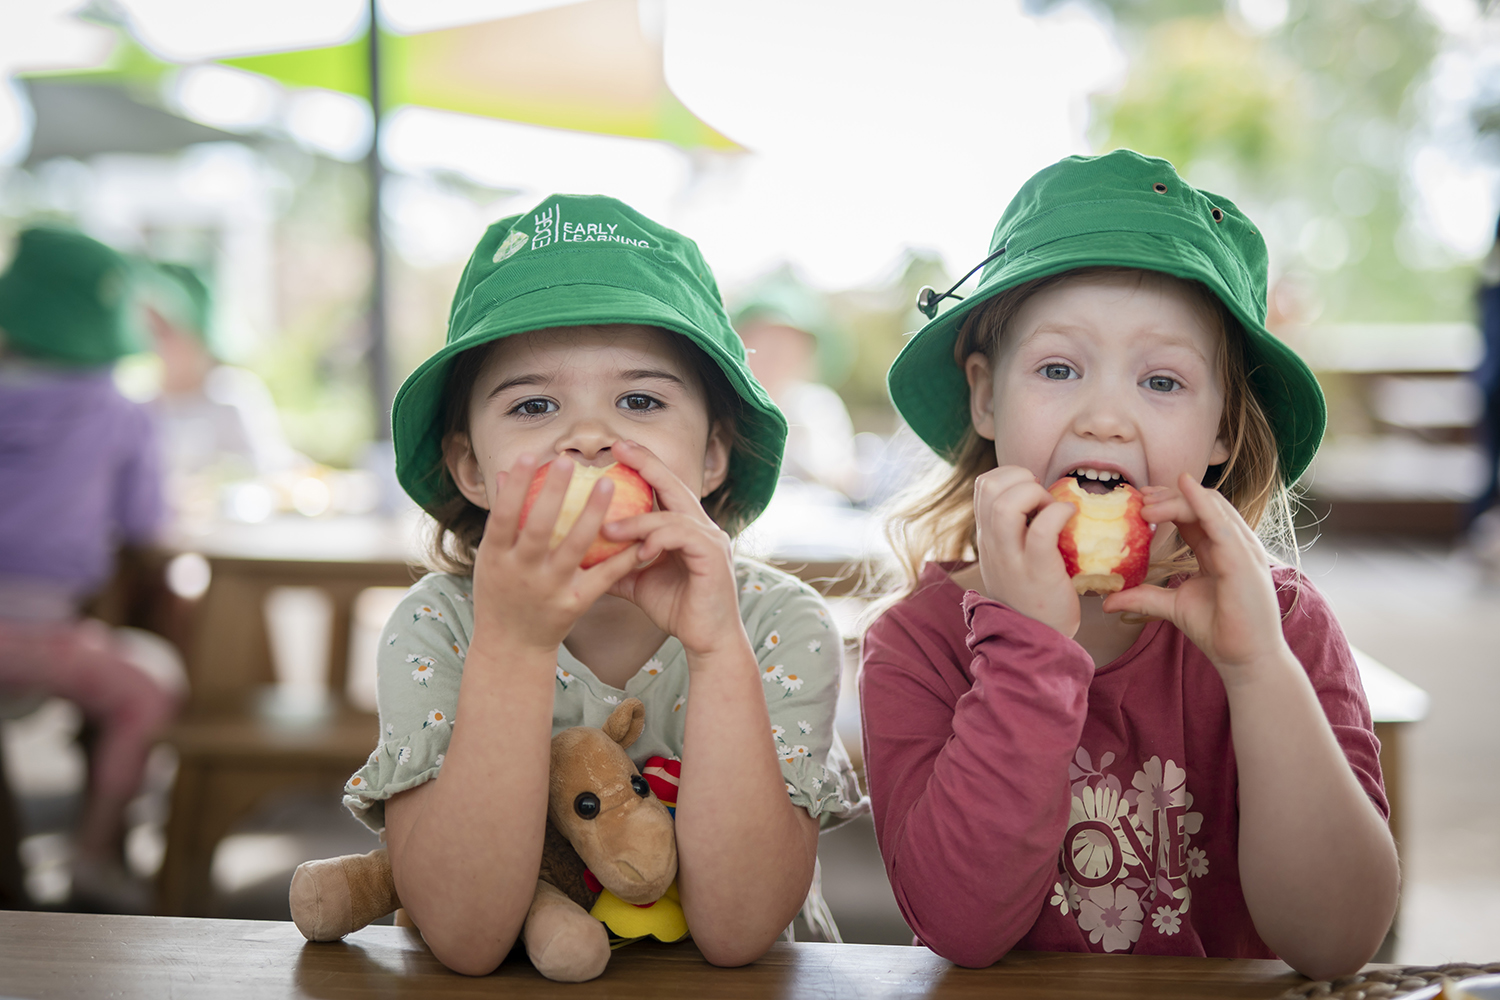 Two girls eating apples